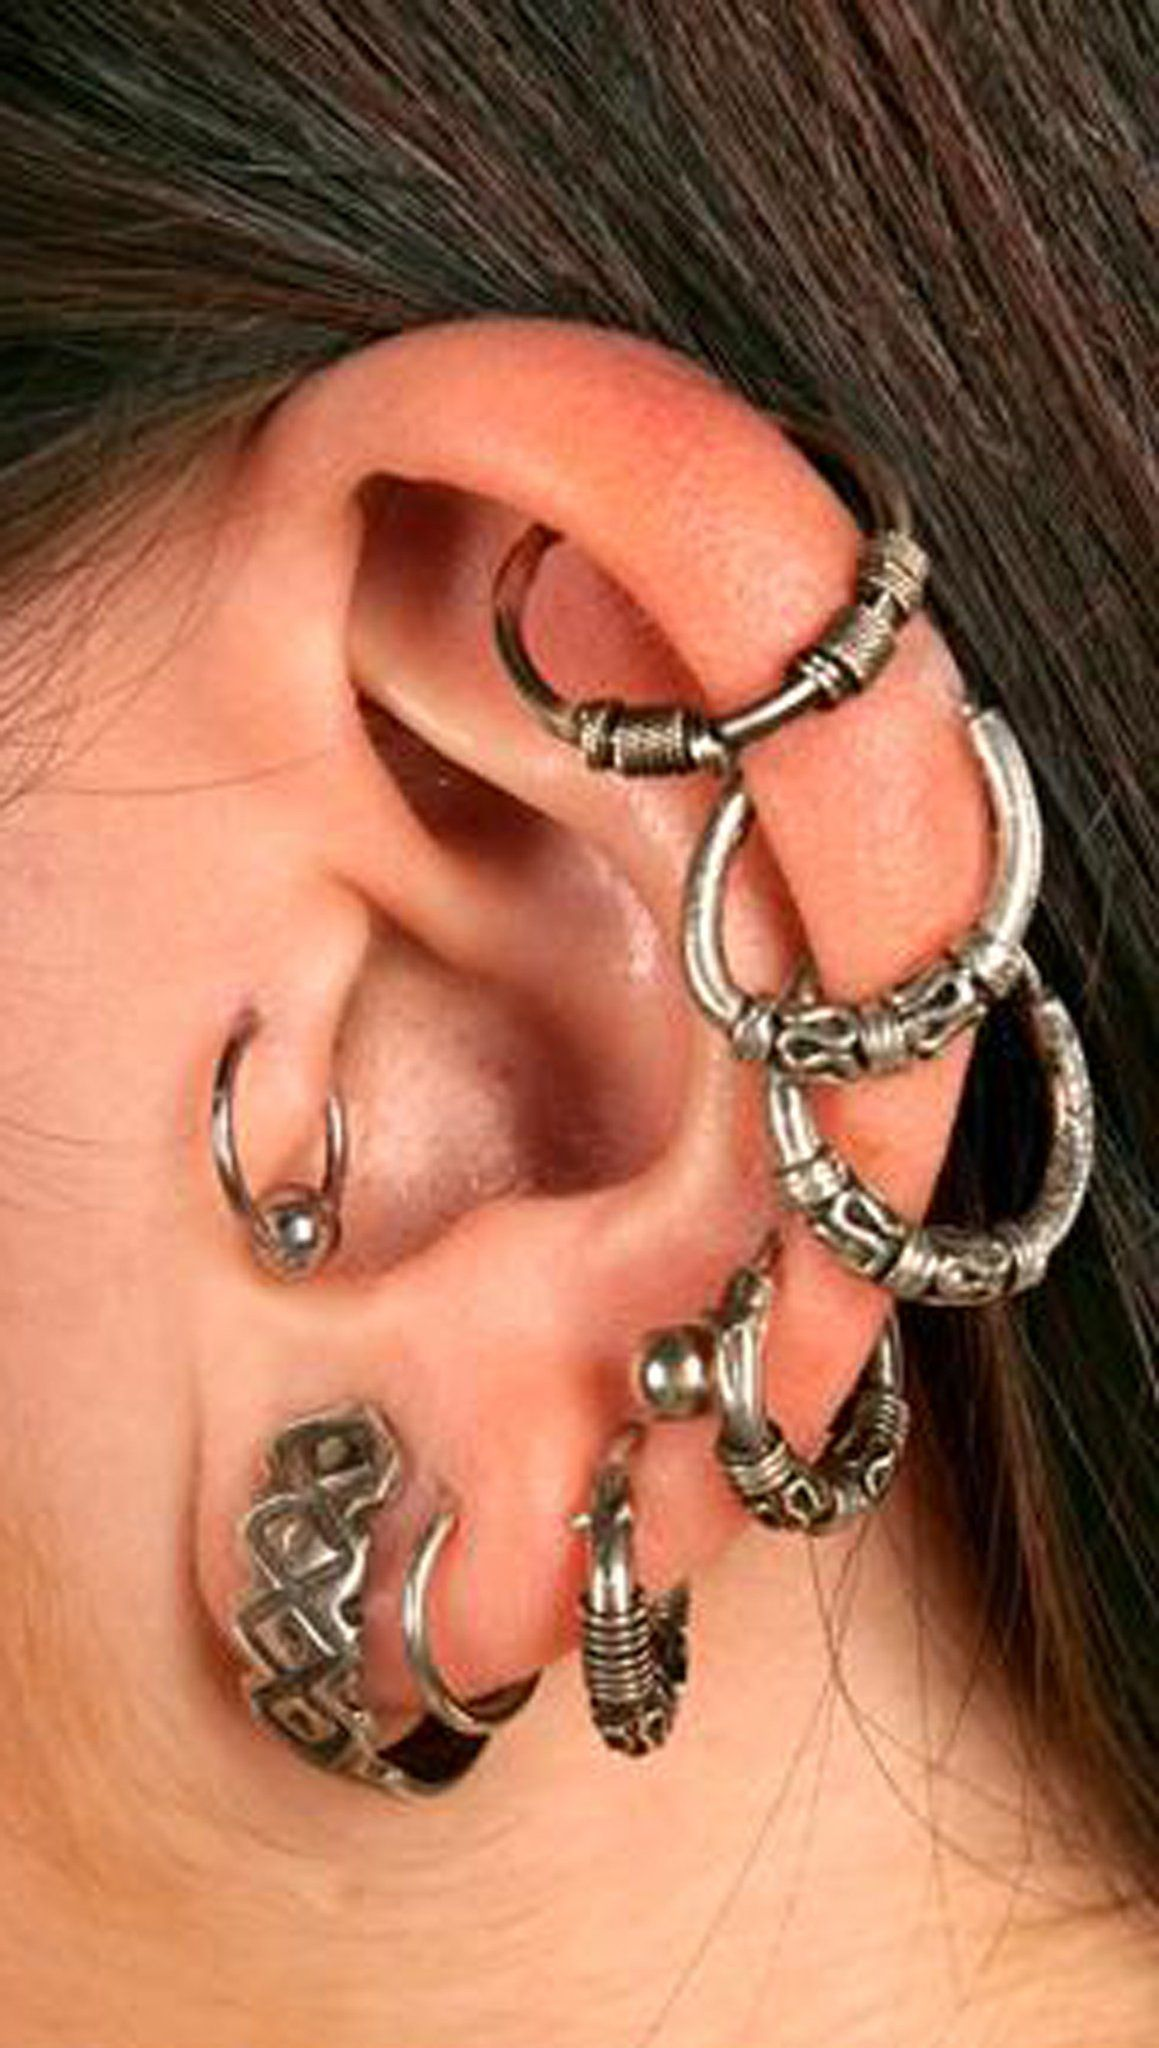 30 Unique Ear Piercing Ideas For The Adventurous Unusual